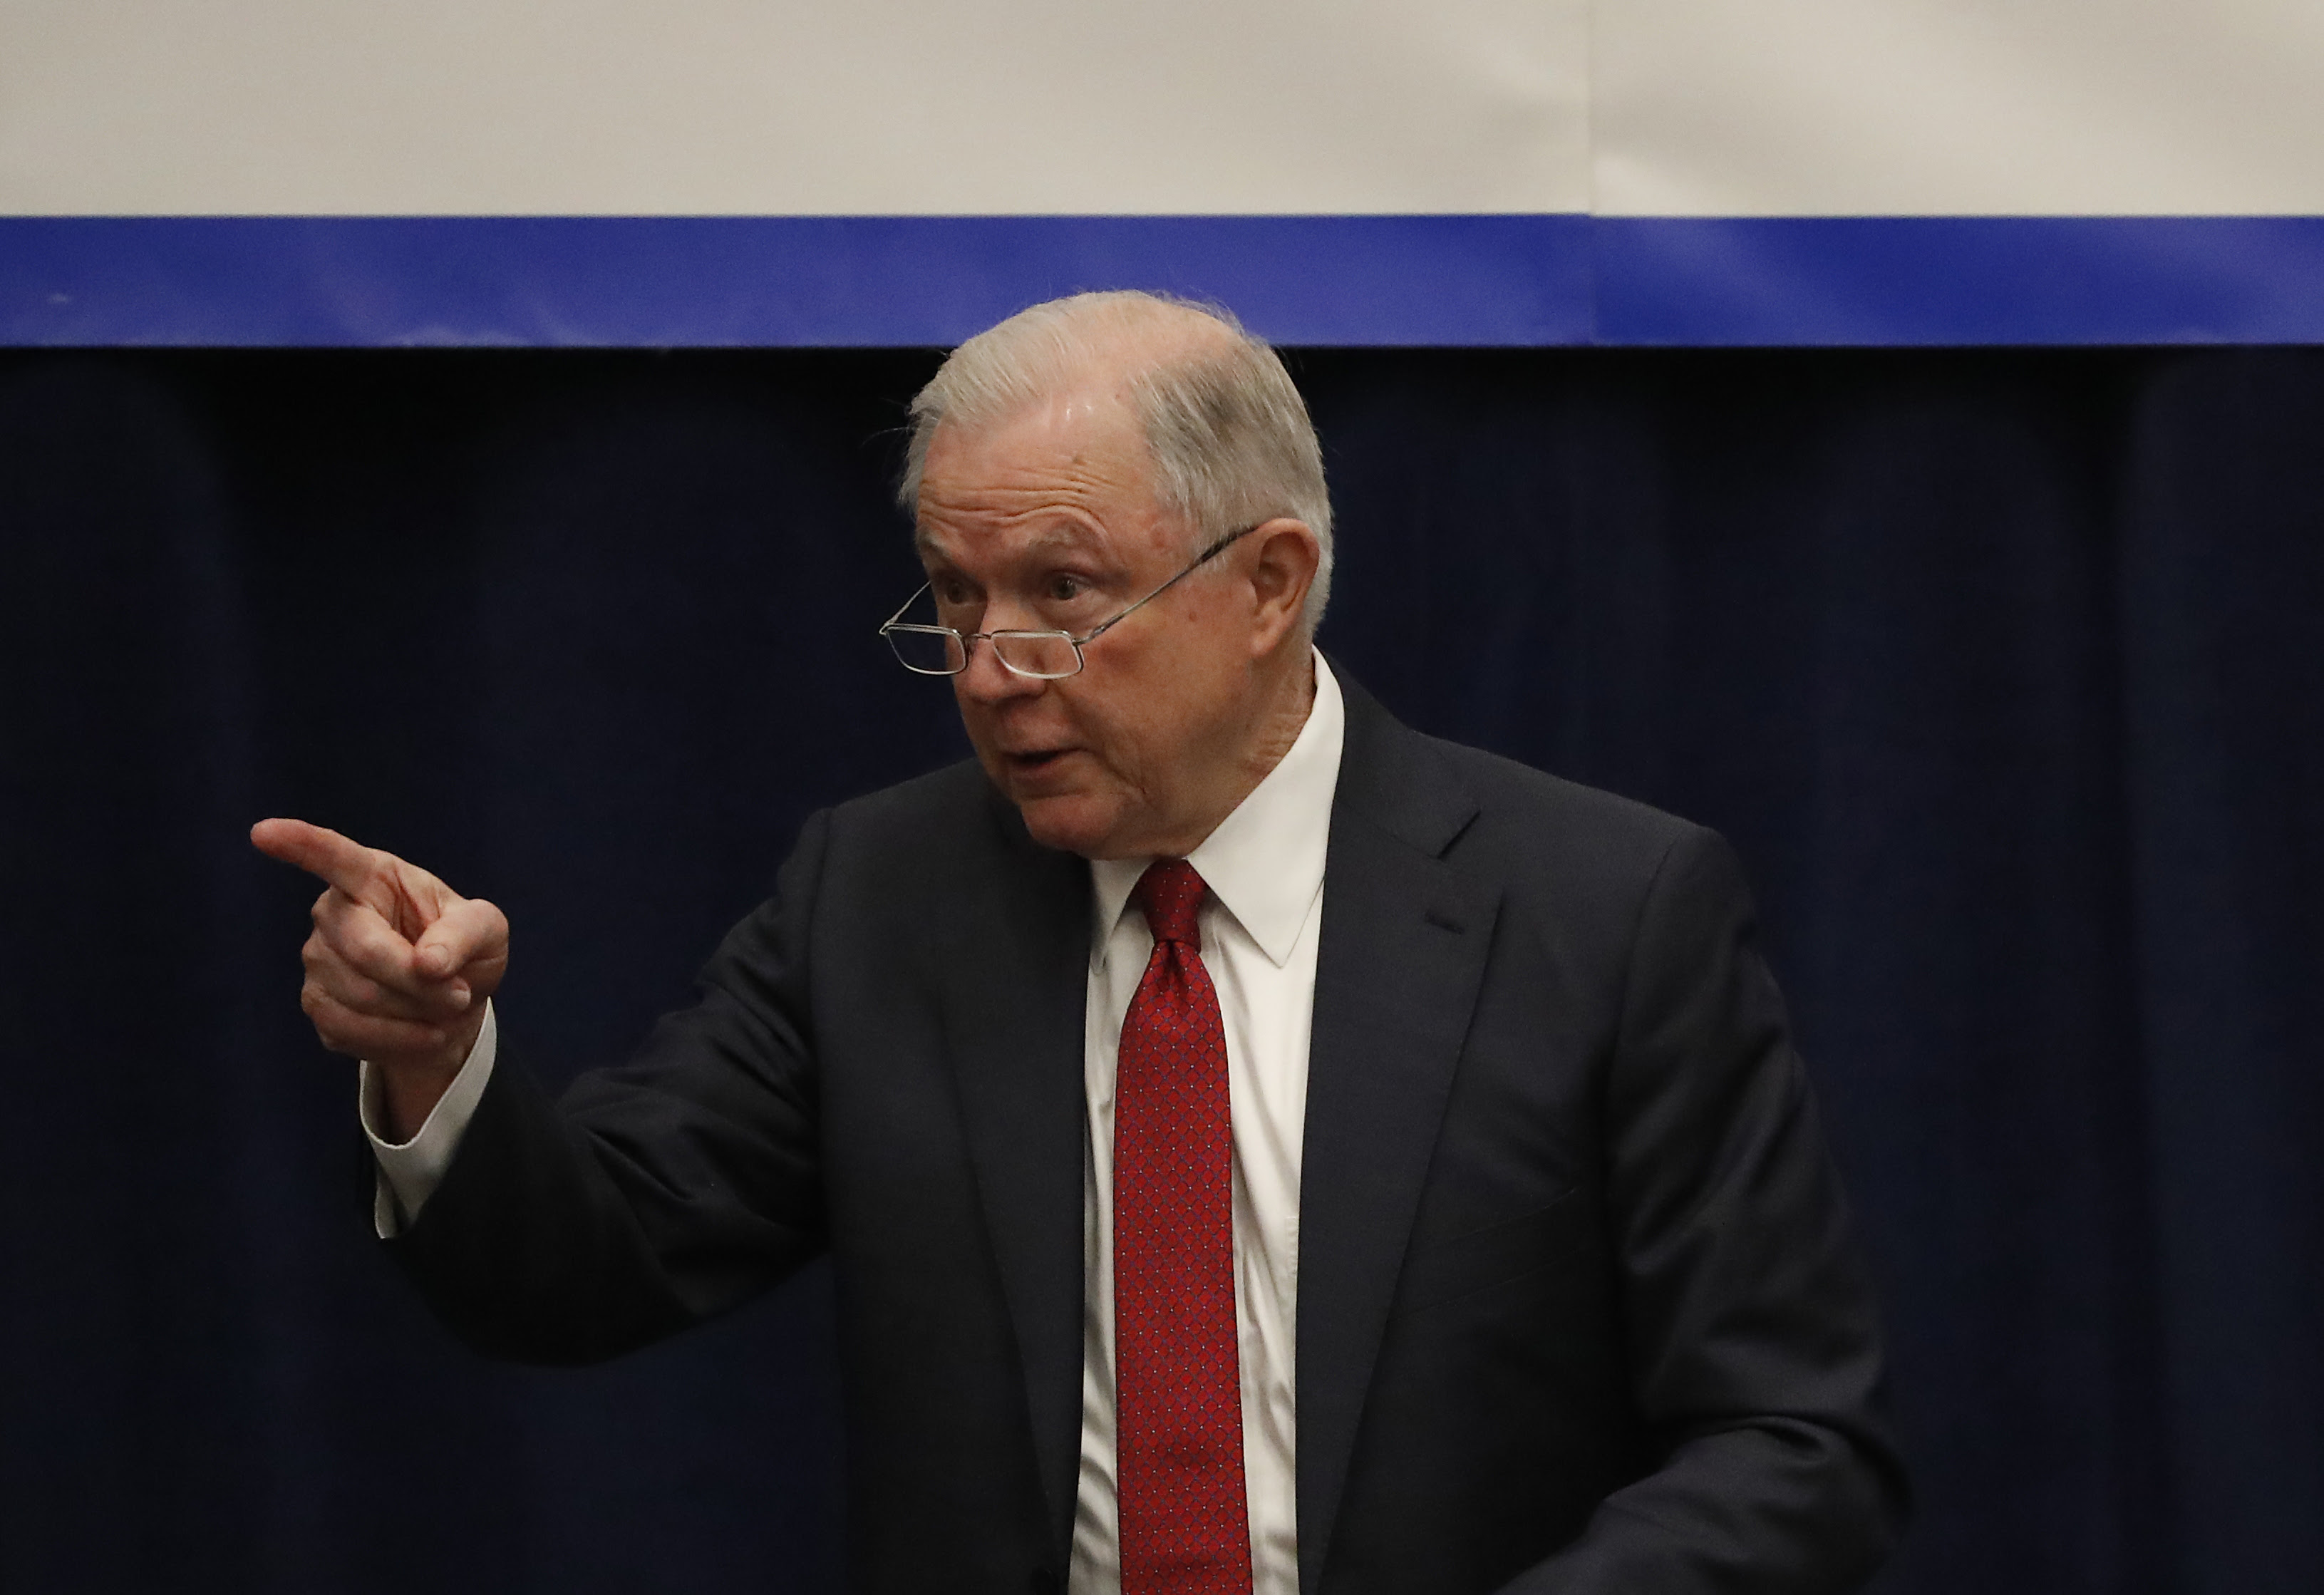 SACRAMENTO, CA - MARCH 07: Attorney General Jeff Sessions gestures as he speaks at the California Peace Officers' Association 26th Annual Law Enforcement Legislative Day on March 7, 2018 in Sacramento, California. The attorney general is expected to reveal a major sanctuary jurisdiction announcement as the Justice Department sued California over its sanctuary policies. (Photo by Stephen Lam/Getty Images)